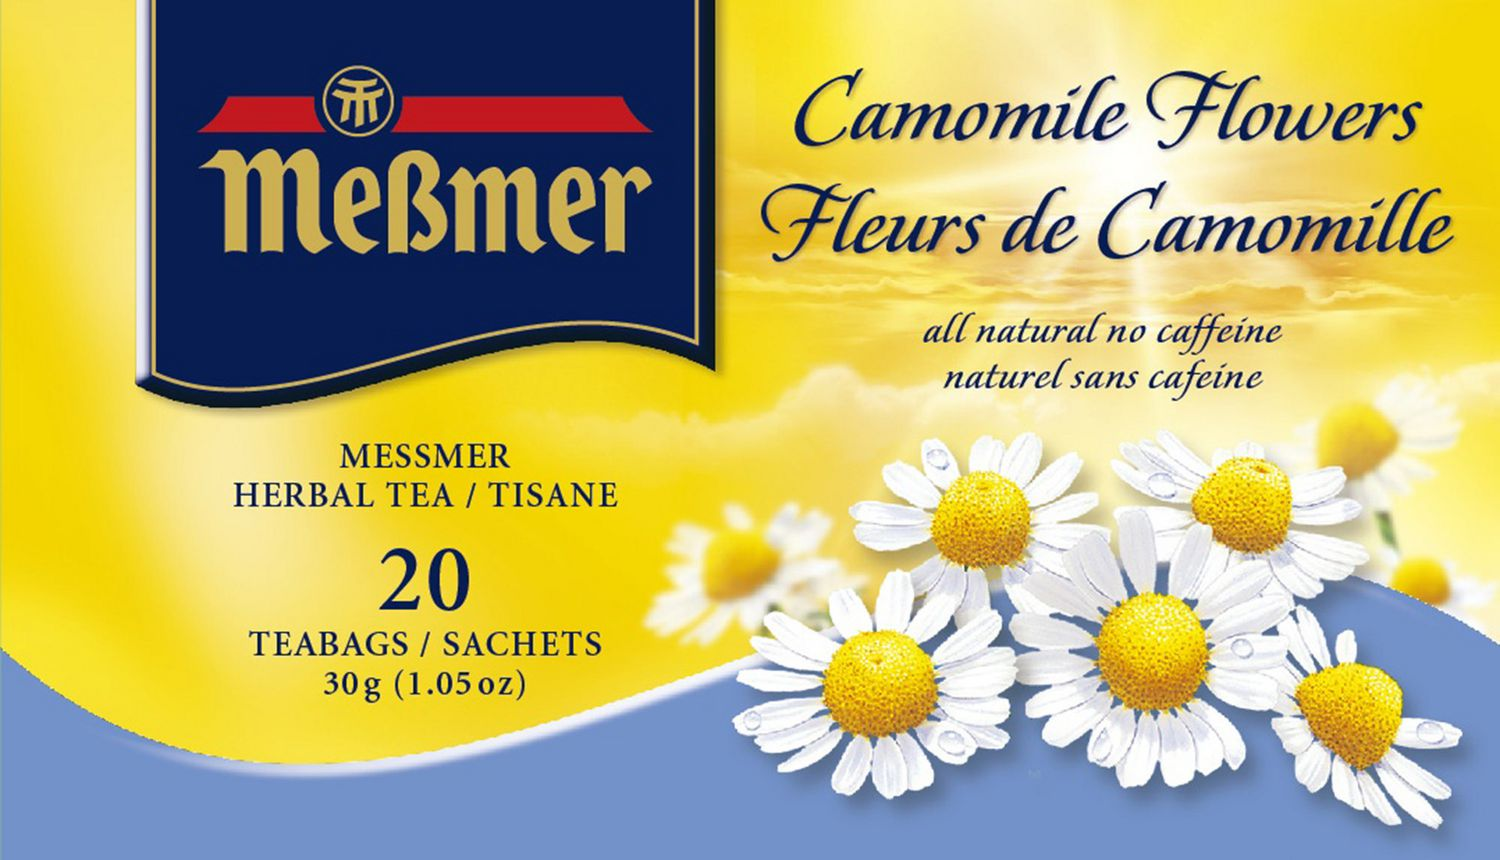 Camomile chamomile: features, reviews, is it worth it to buy